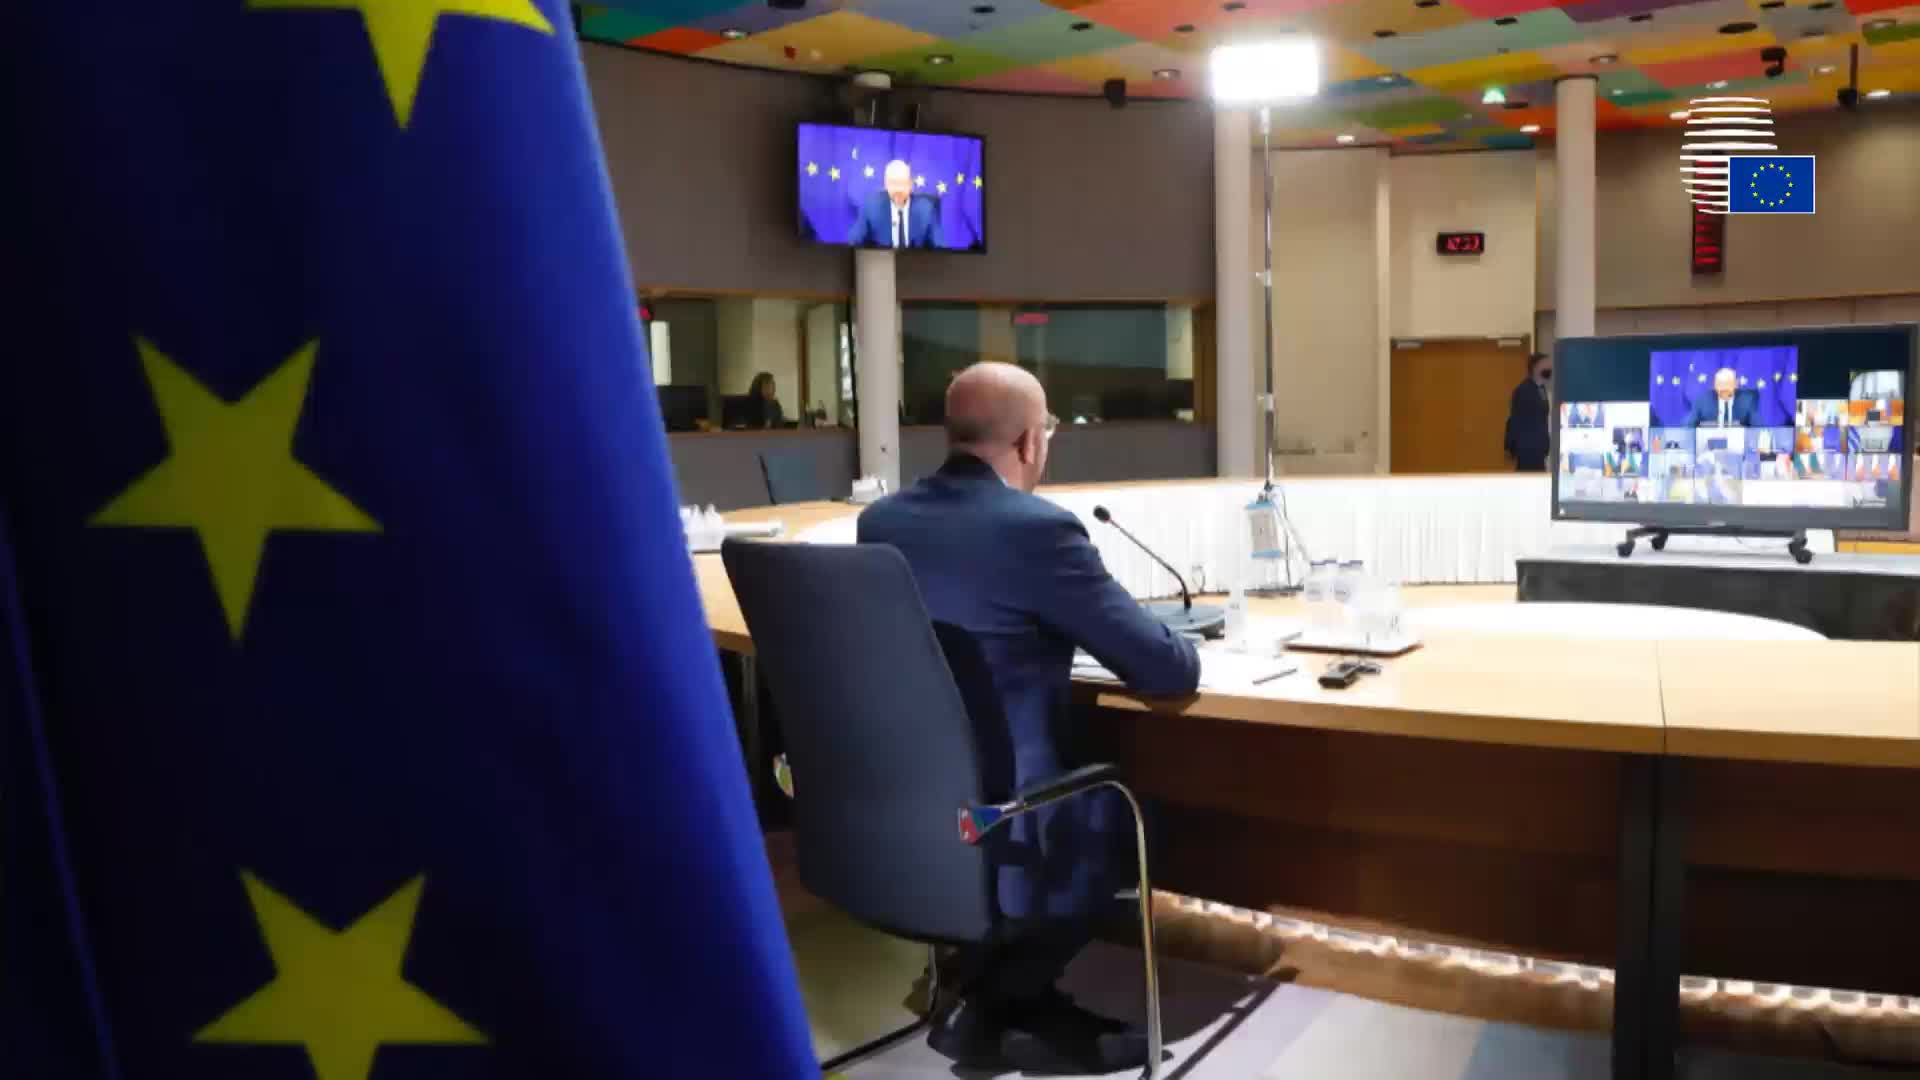 Video conference of the members of the European Council